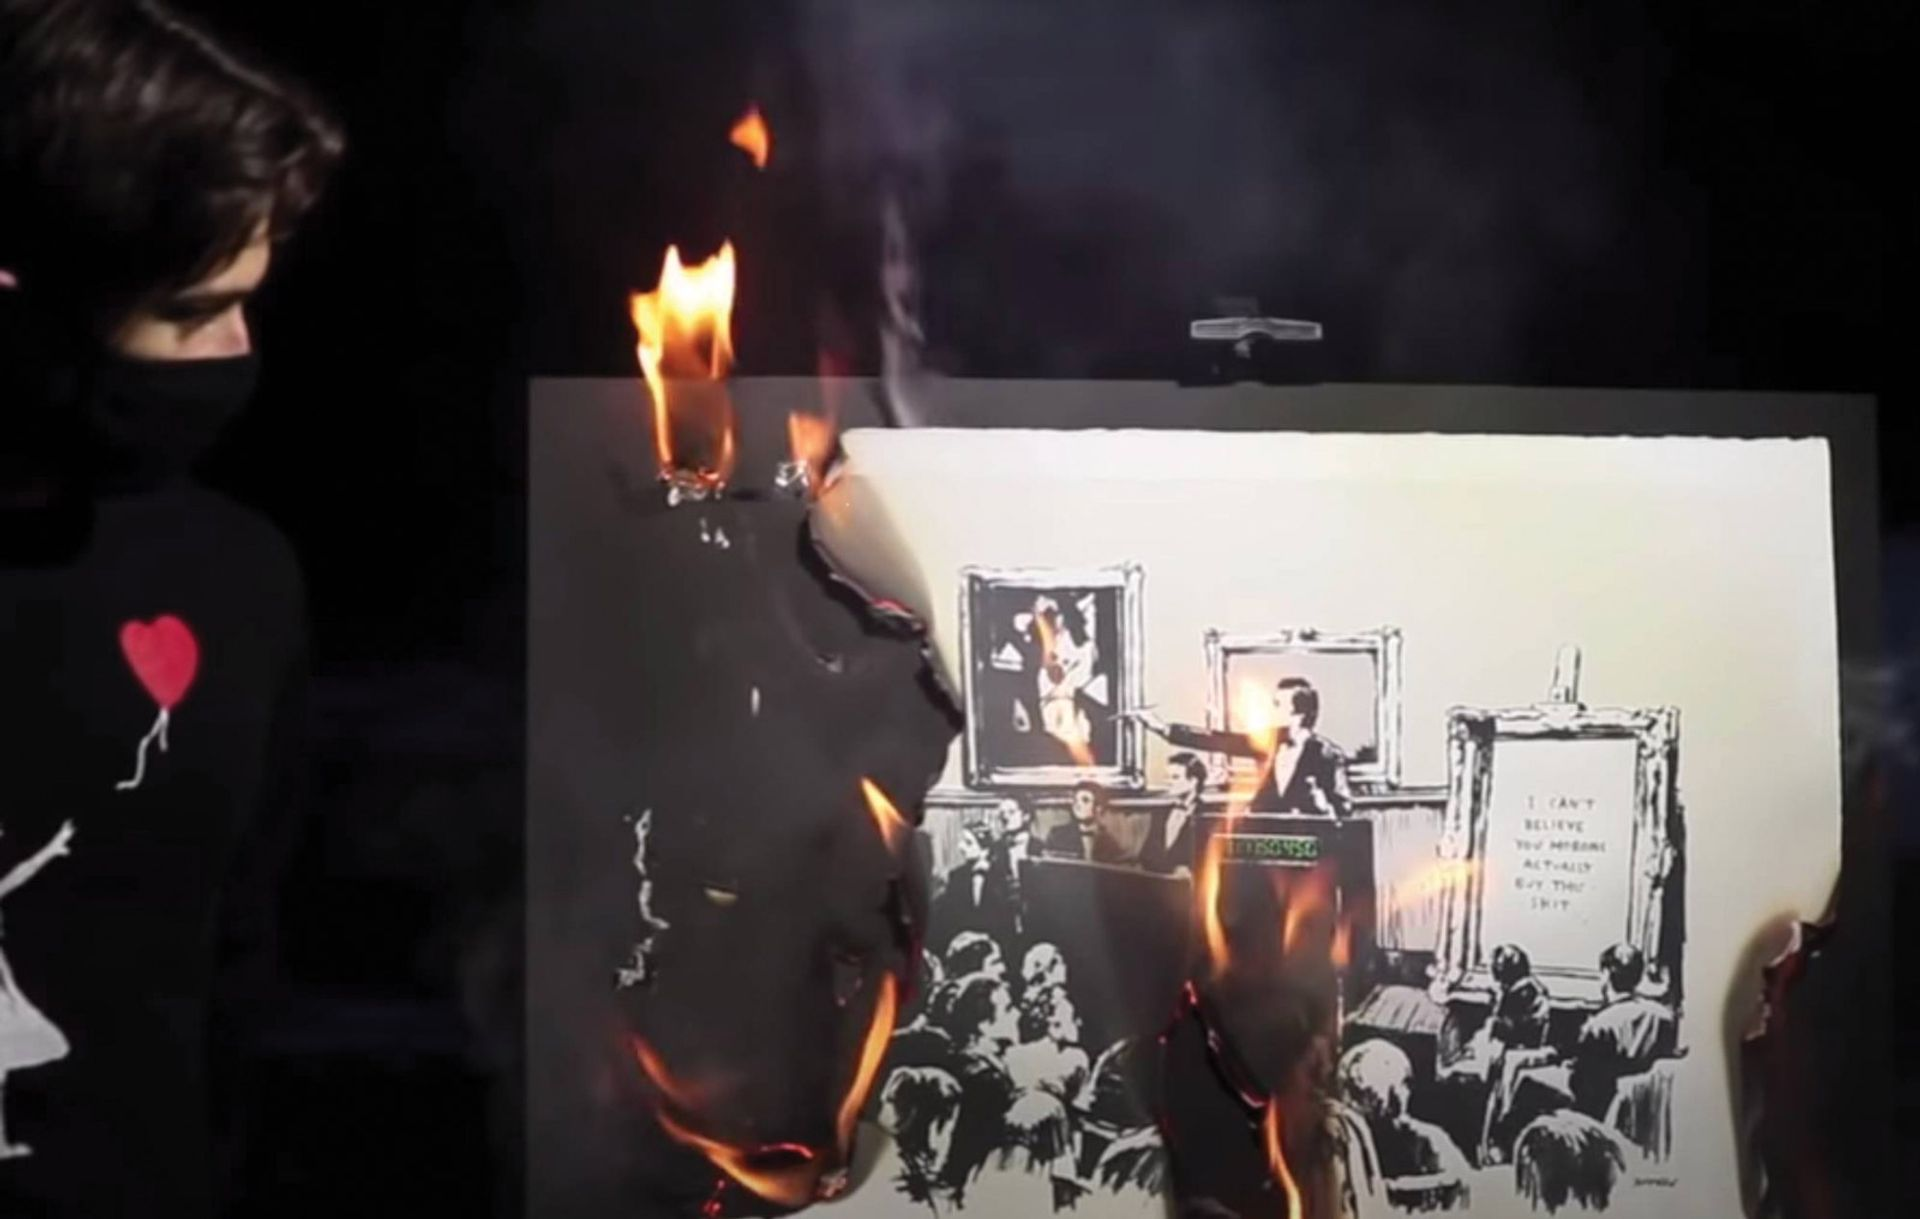 The live-streamed burning ceremony of Banksy's Morons (2006) by the collective Burnt Banksy ©Banksy. Photo: Burnt Banksy